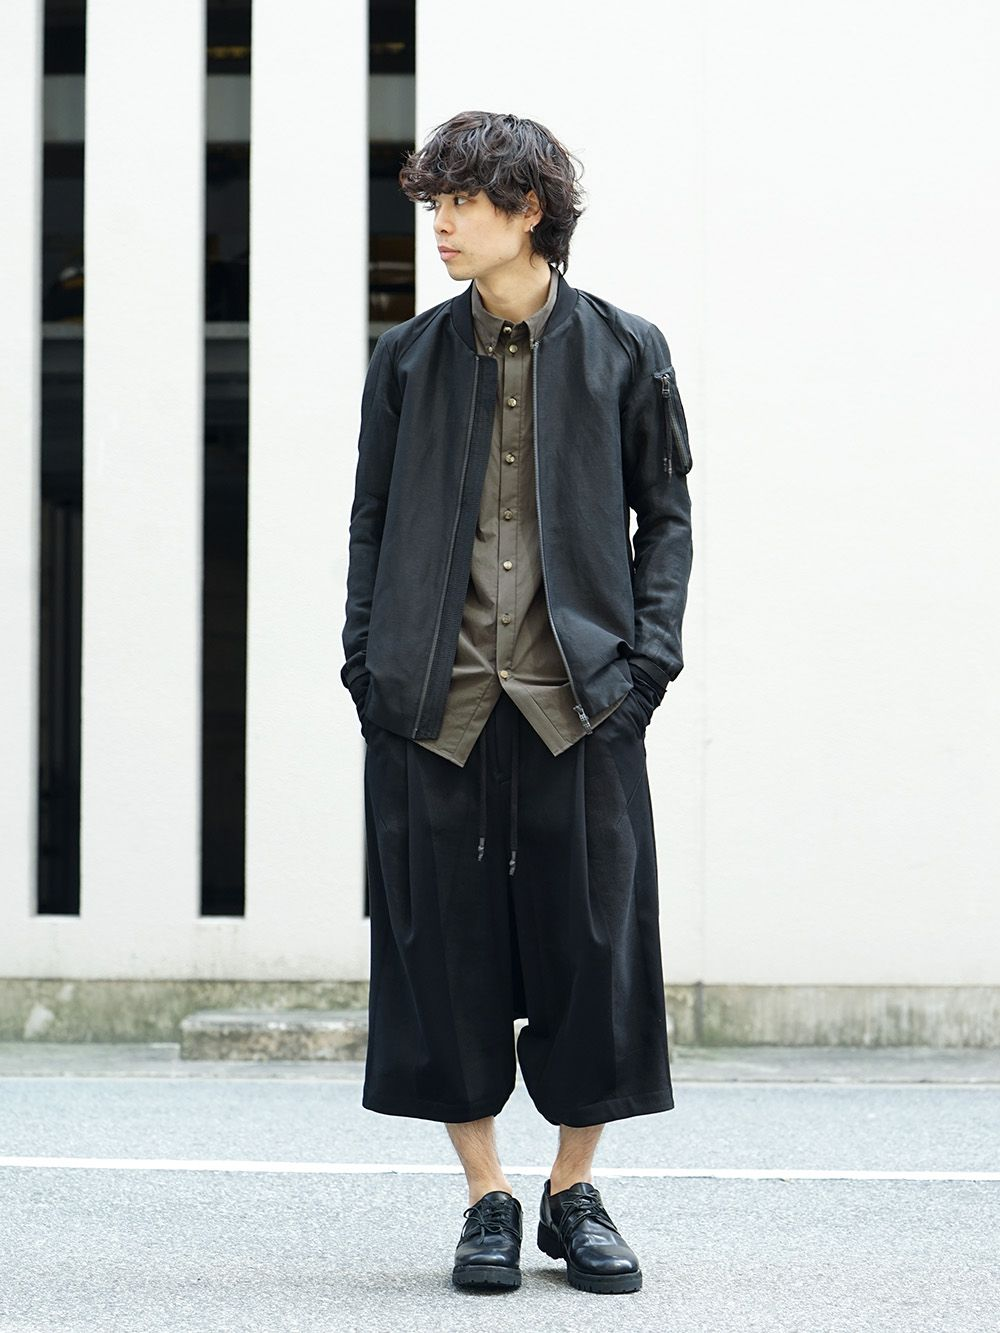 DEVOA 19SS COLLECTION IMMUTABLE COOL STYLE - 1-001